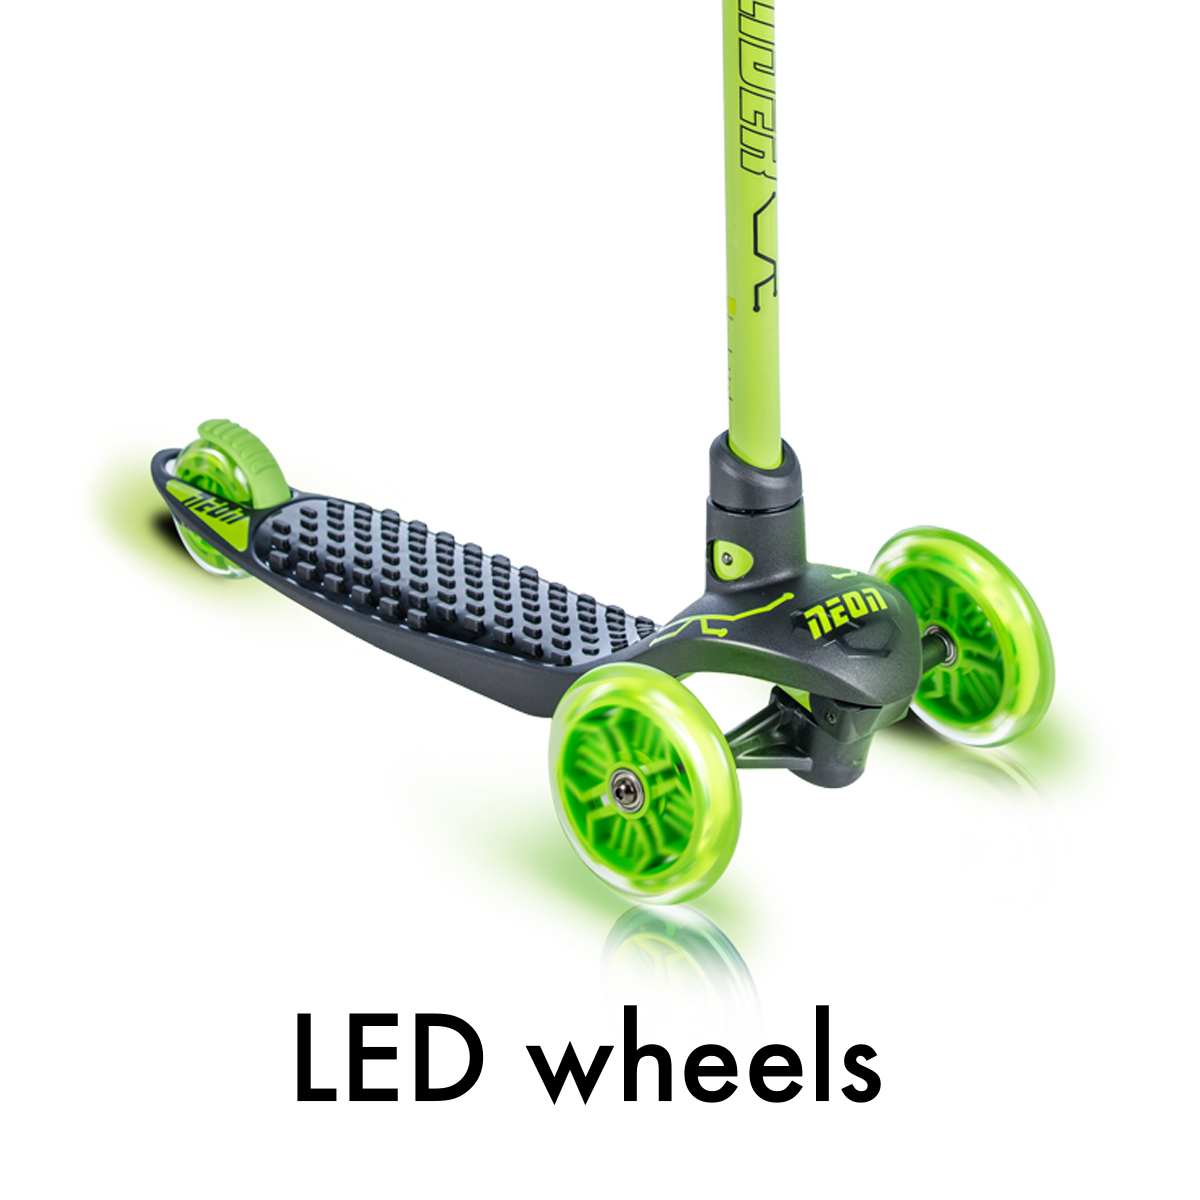 LED wheels (no battery required)